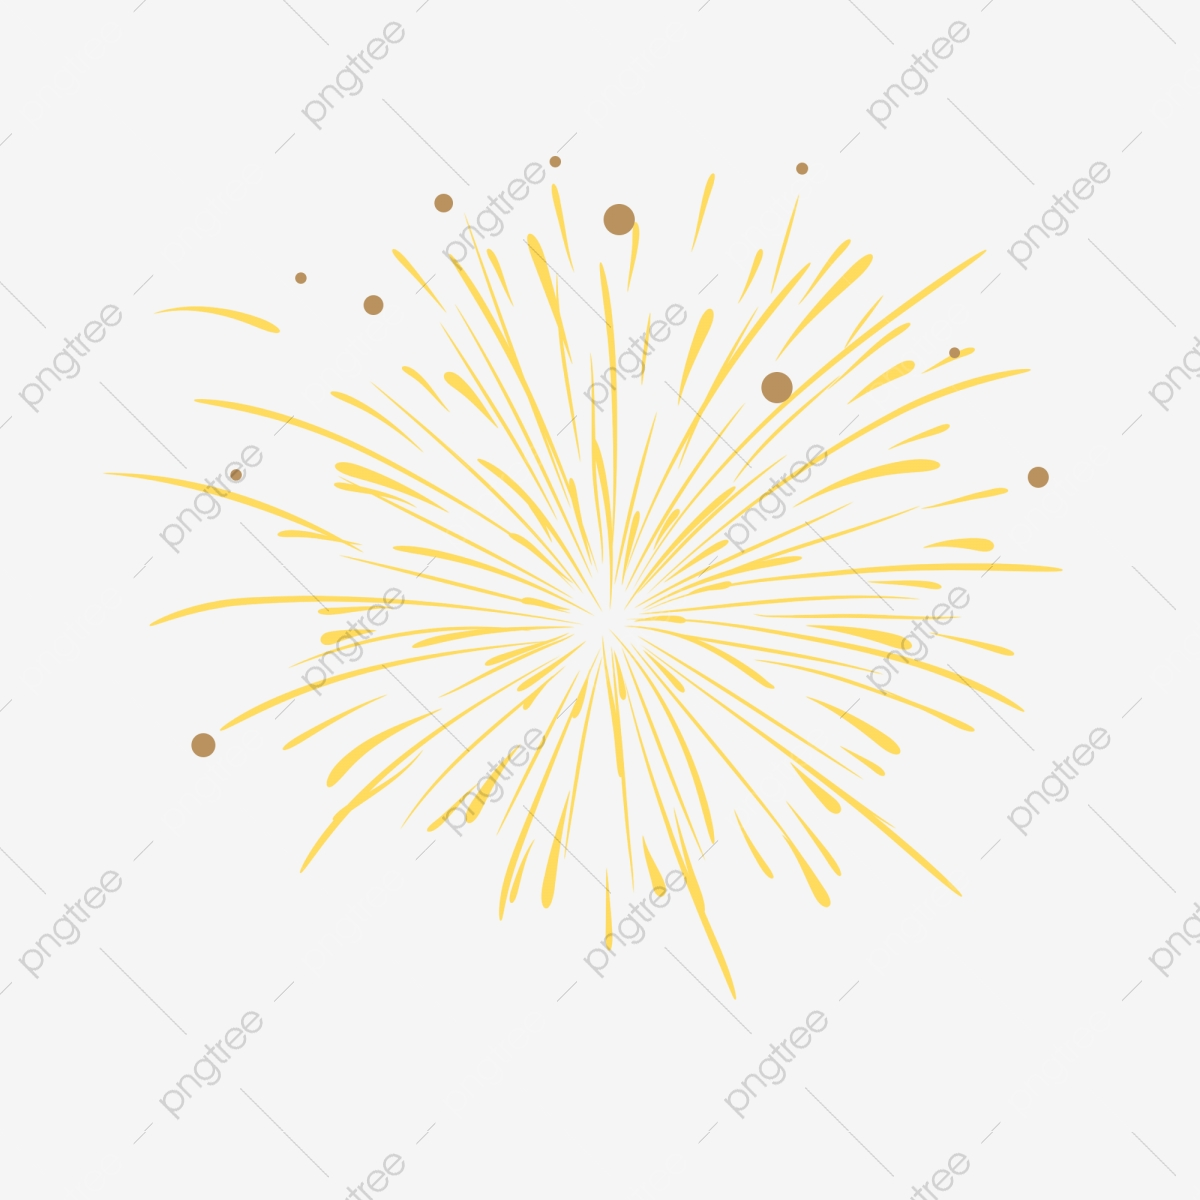 Free Animated Fireworks Cliparts, Download Free Clip Art, Free Clip Art on  Clipart Library